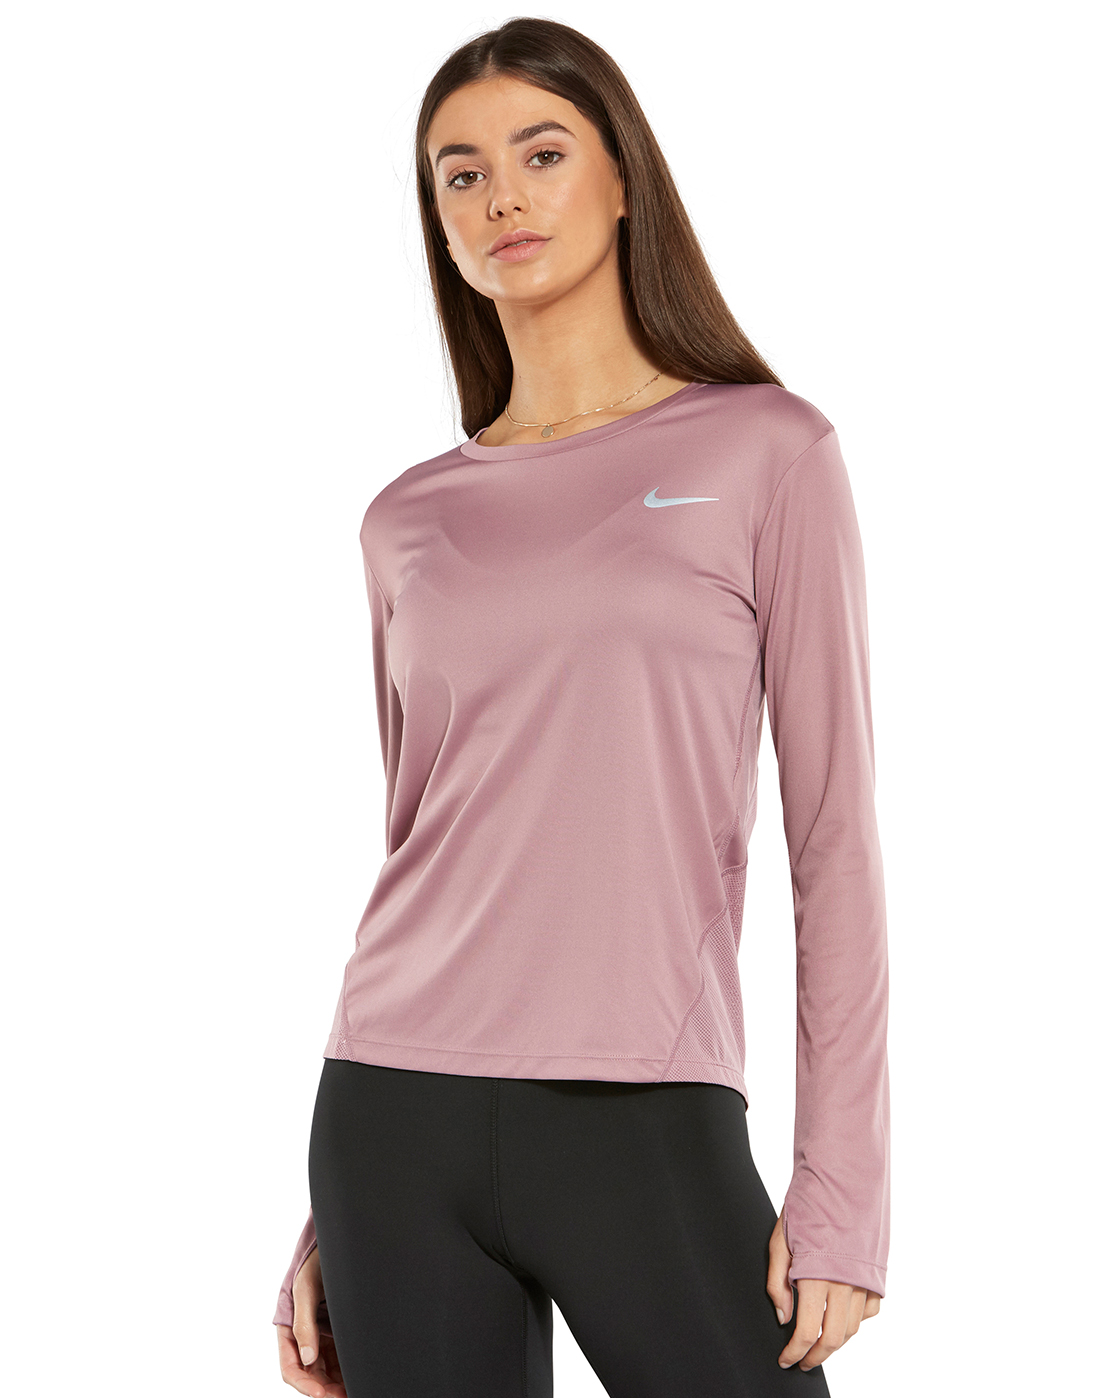 984b3b4d Women's Pink Nike Long Sleeve Running T-Shirt | Life Style Sports